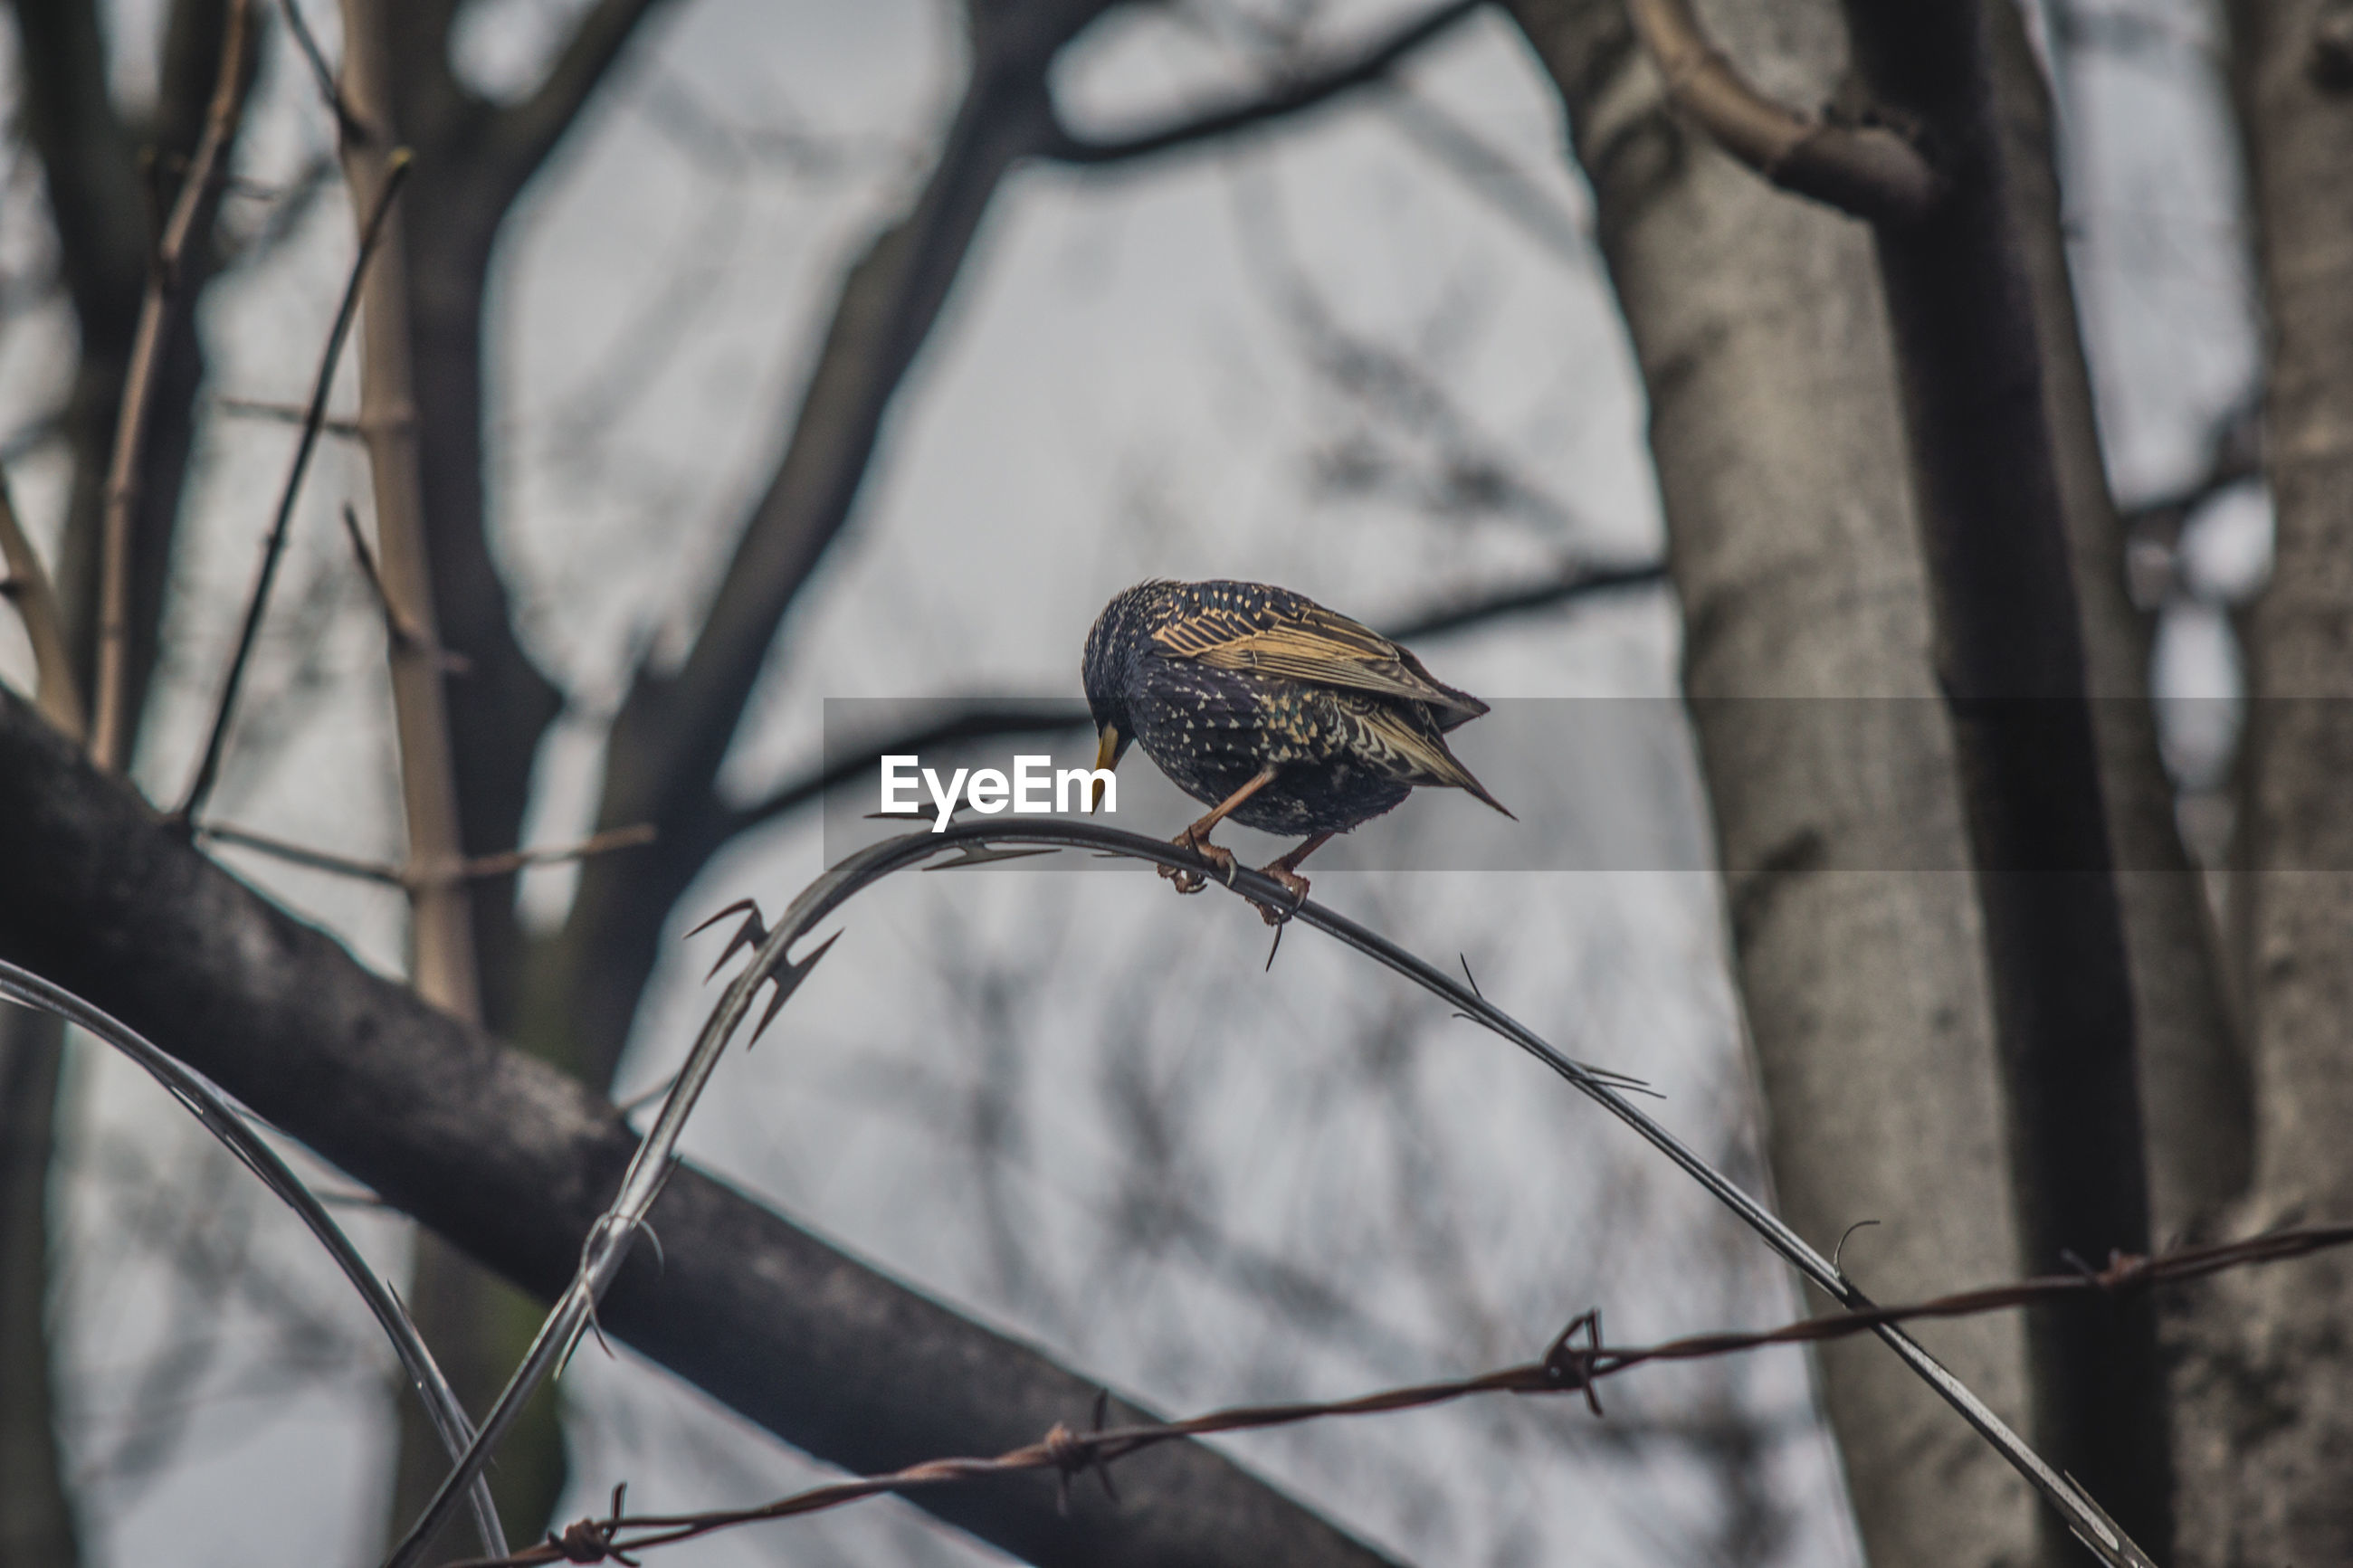 Low angle view of bird perching on barbed wire against trees